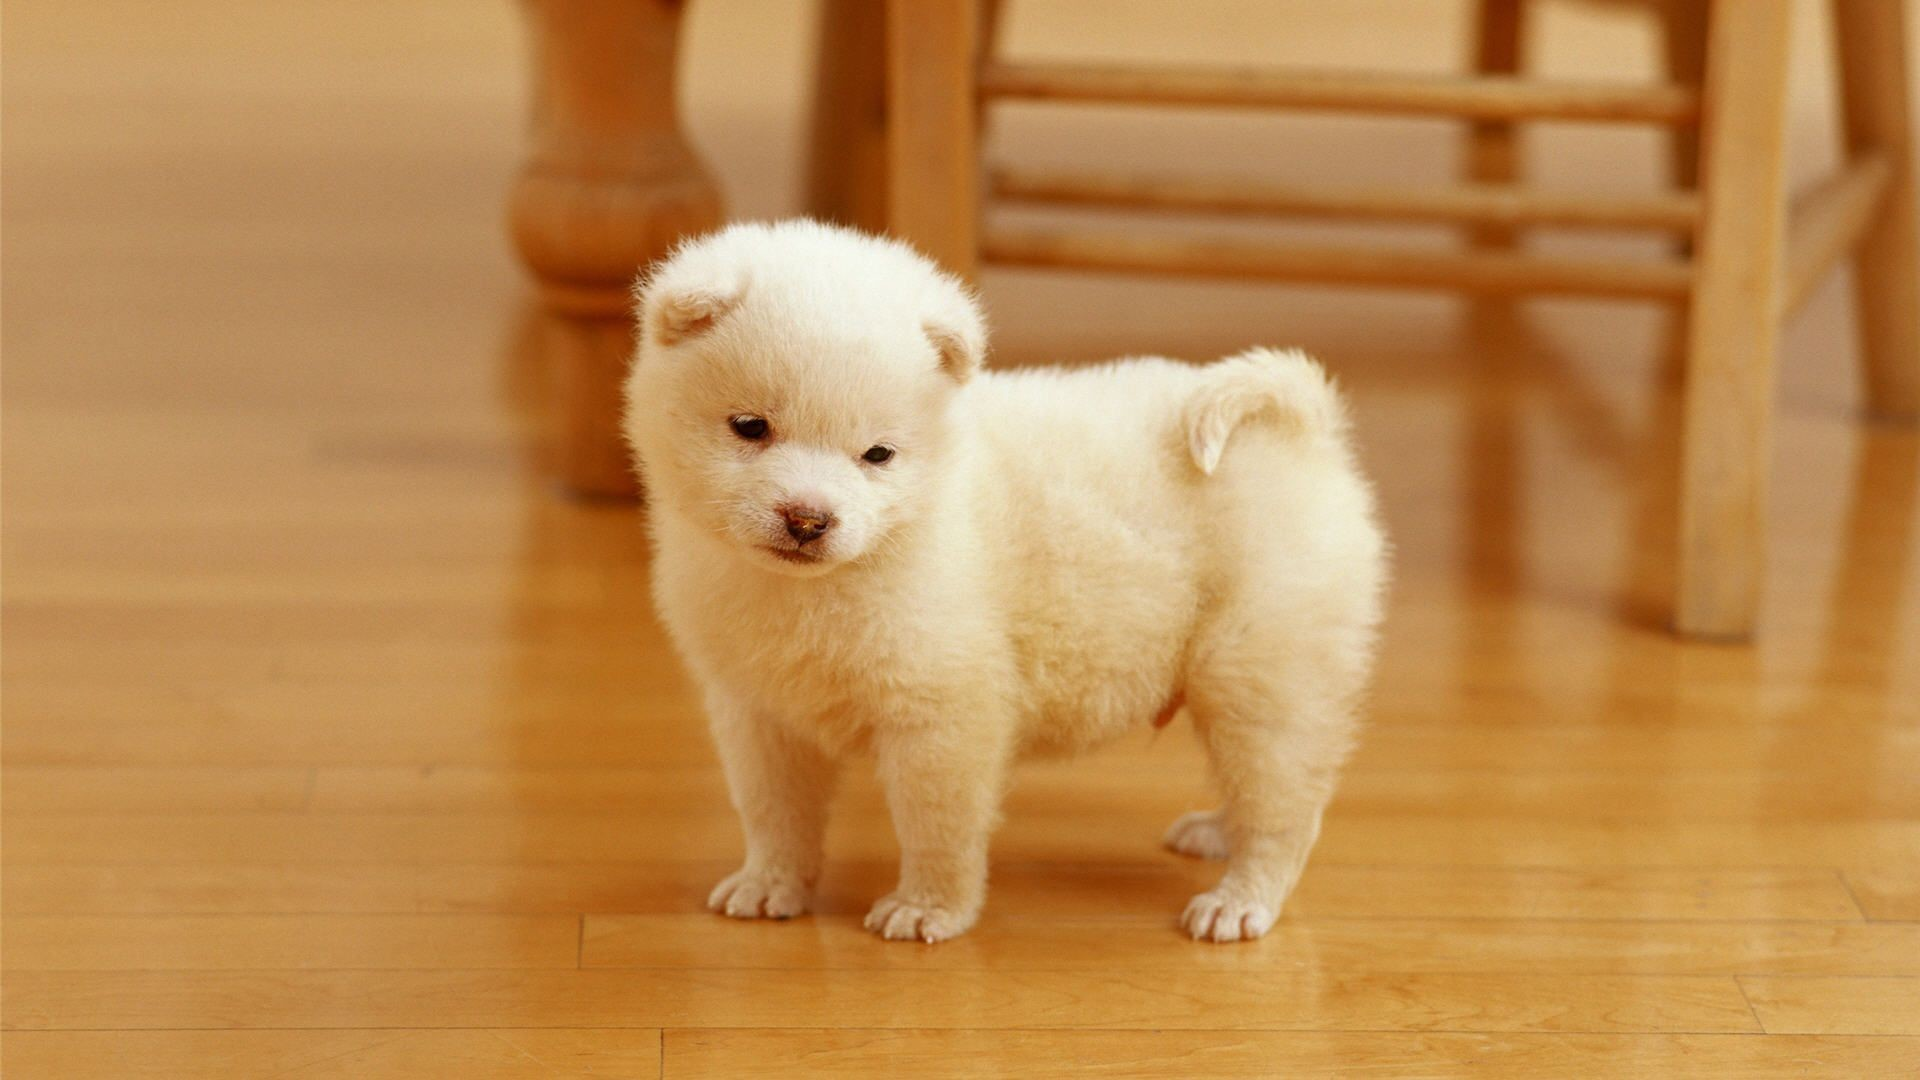 Puppy Wallpapers For Desktop 67 Images